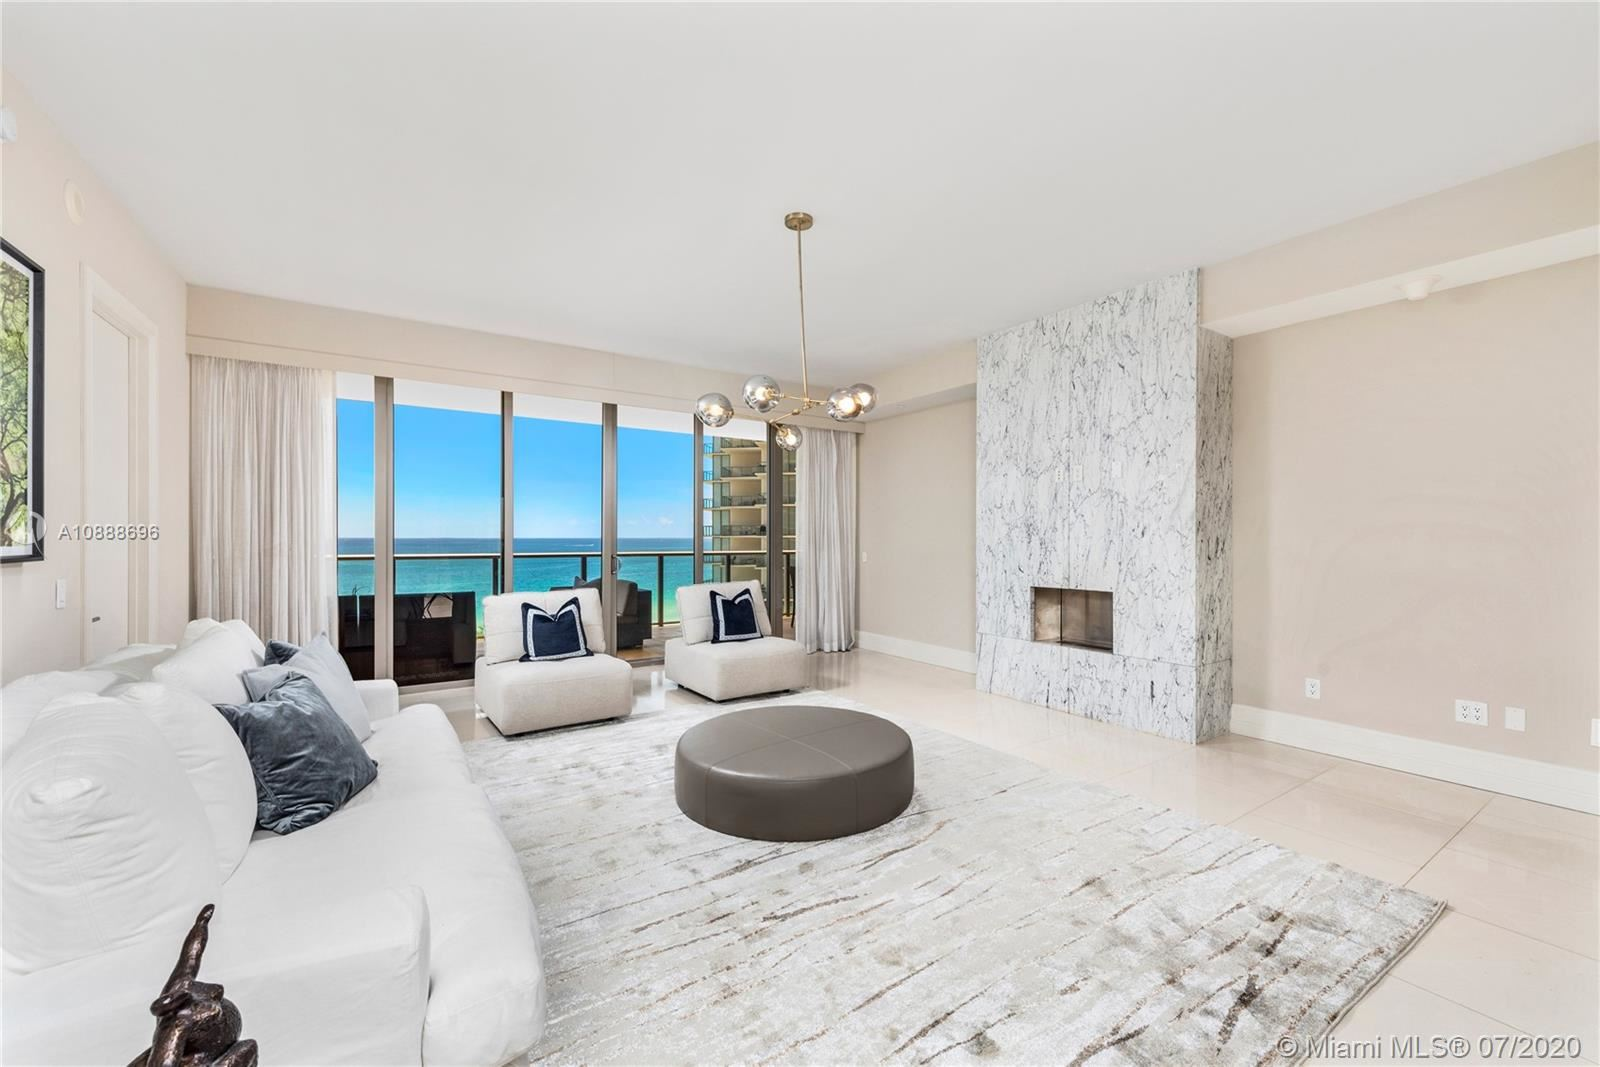 9705 Collins Ave #802N, Bal Harbour, FL 33154 - #: A10888696